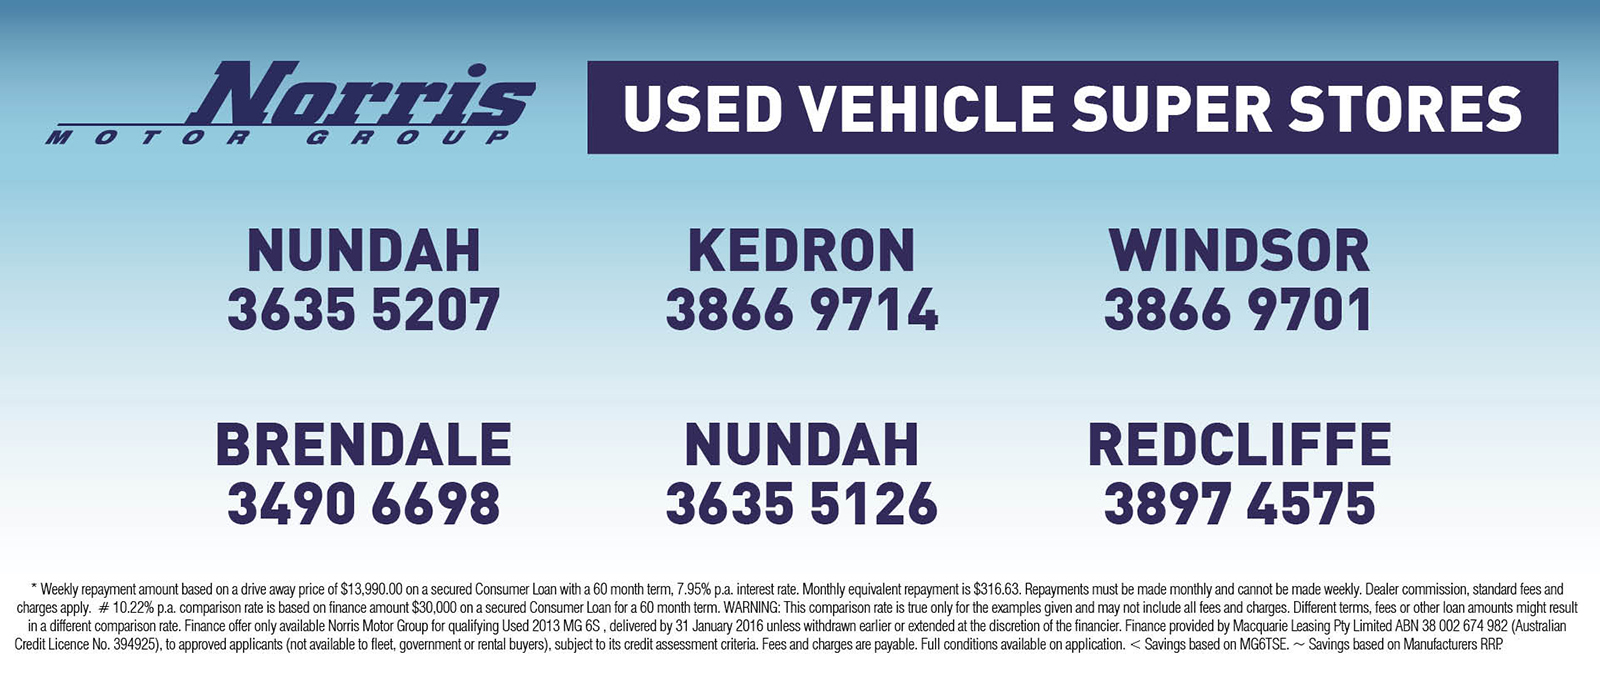 Visit any of Norris Motor Groups 6 used vehicle superstores across Brisbane today.